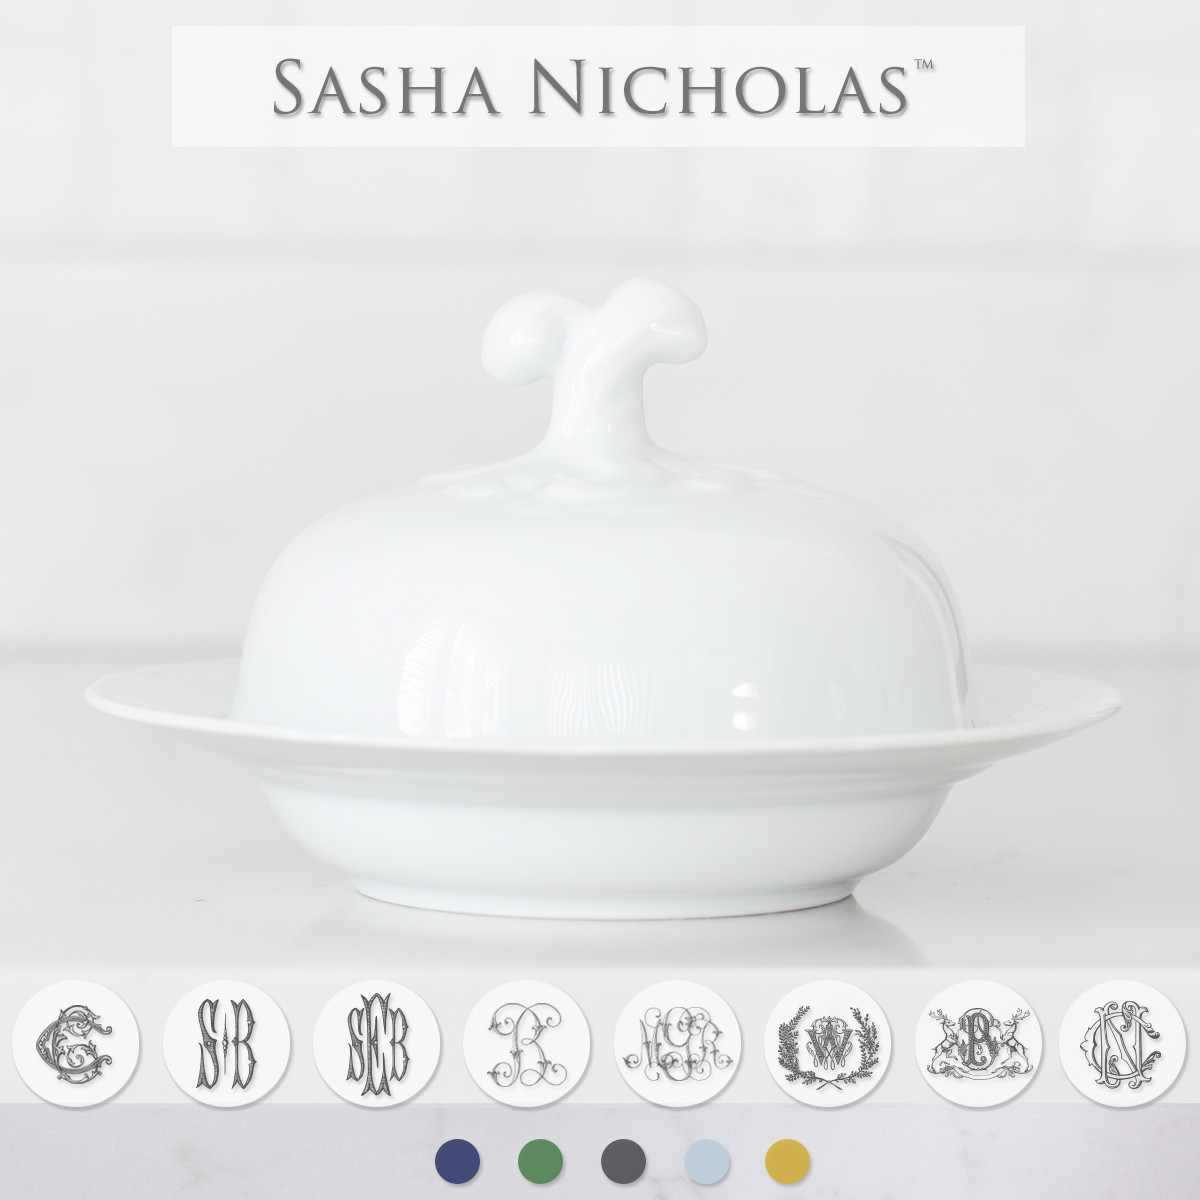 Sasha Nicholas custom dinnerware monogram crest monogrammed Wedding registry bridal gift covered bowl basketweave weave PHOTO DESC